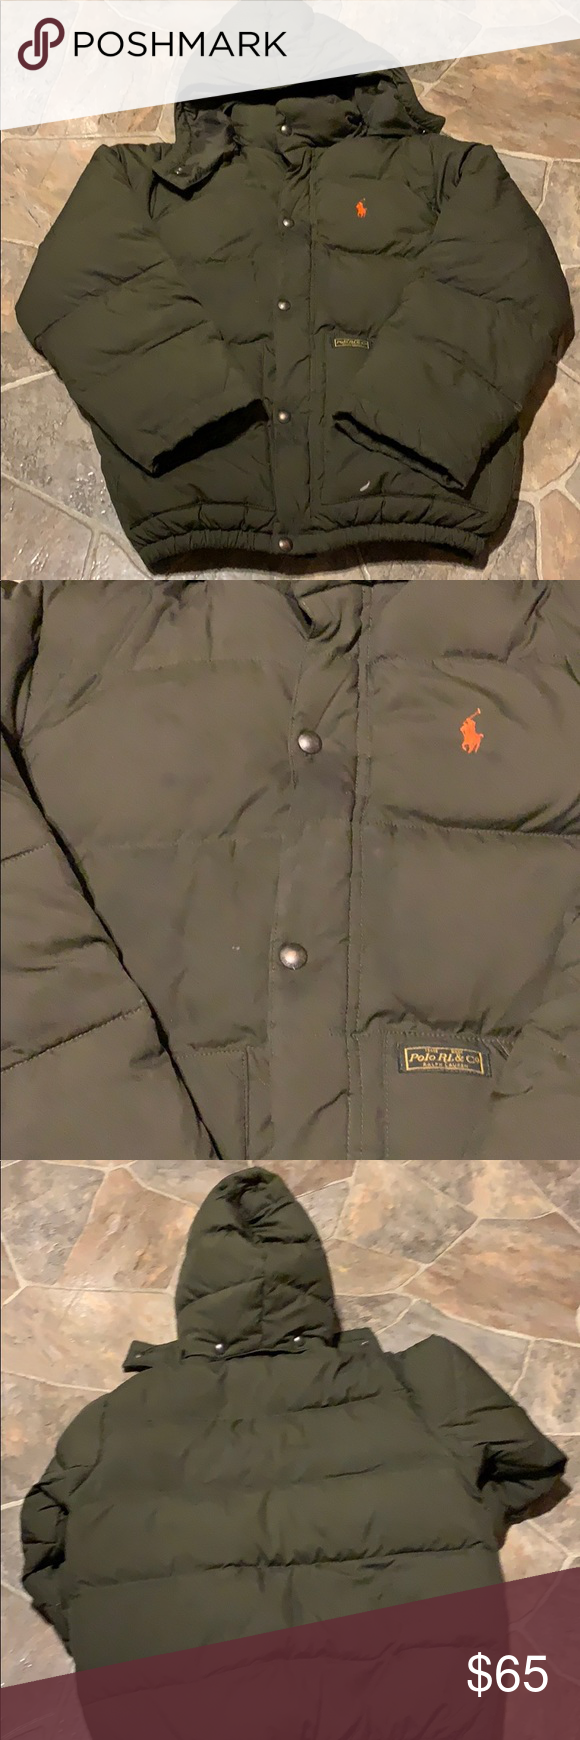 4163baffb Ralph Lauren winter coat... Olive green puffer coat with orange horse....size  10/12. Still in excellent condition. I will wash before shipping Ralph  Lauren ...